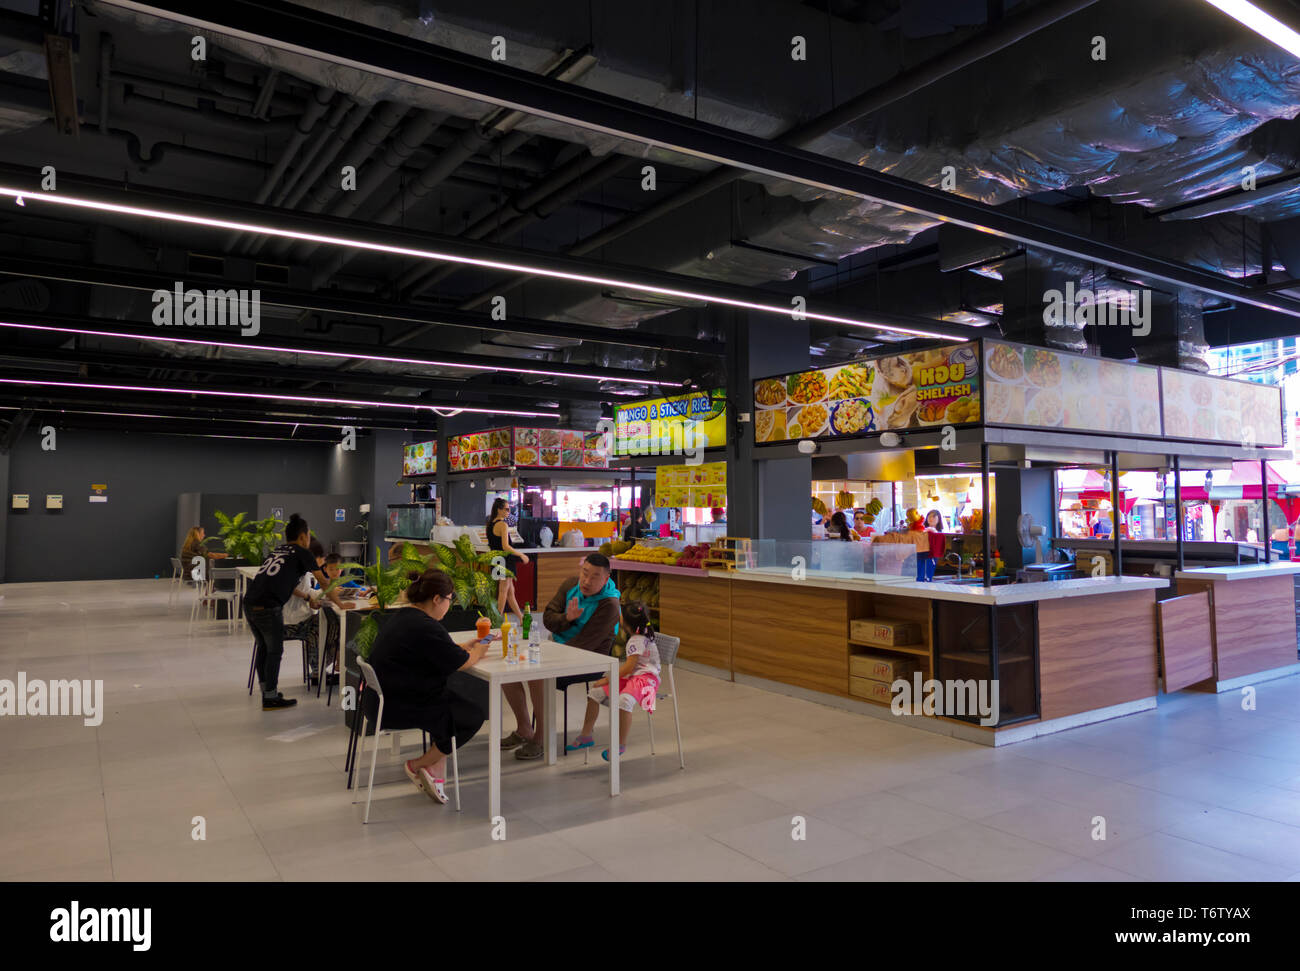 Eating area indoors, Patong, Phuket island, Thailand - Stock Image